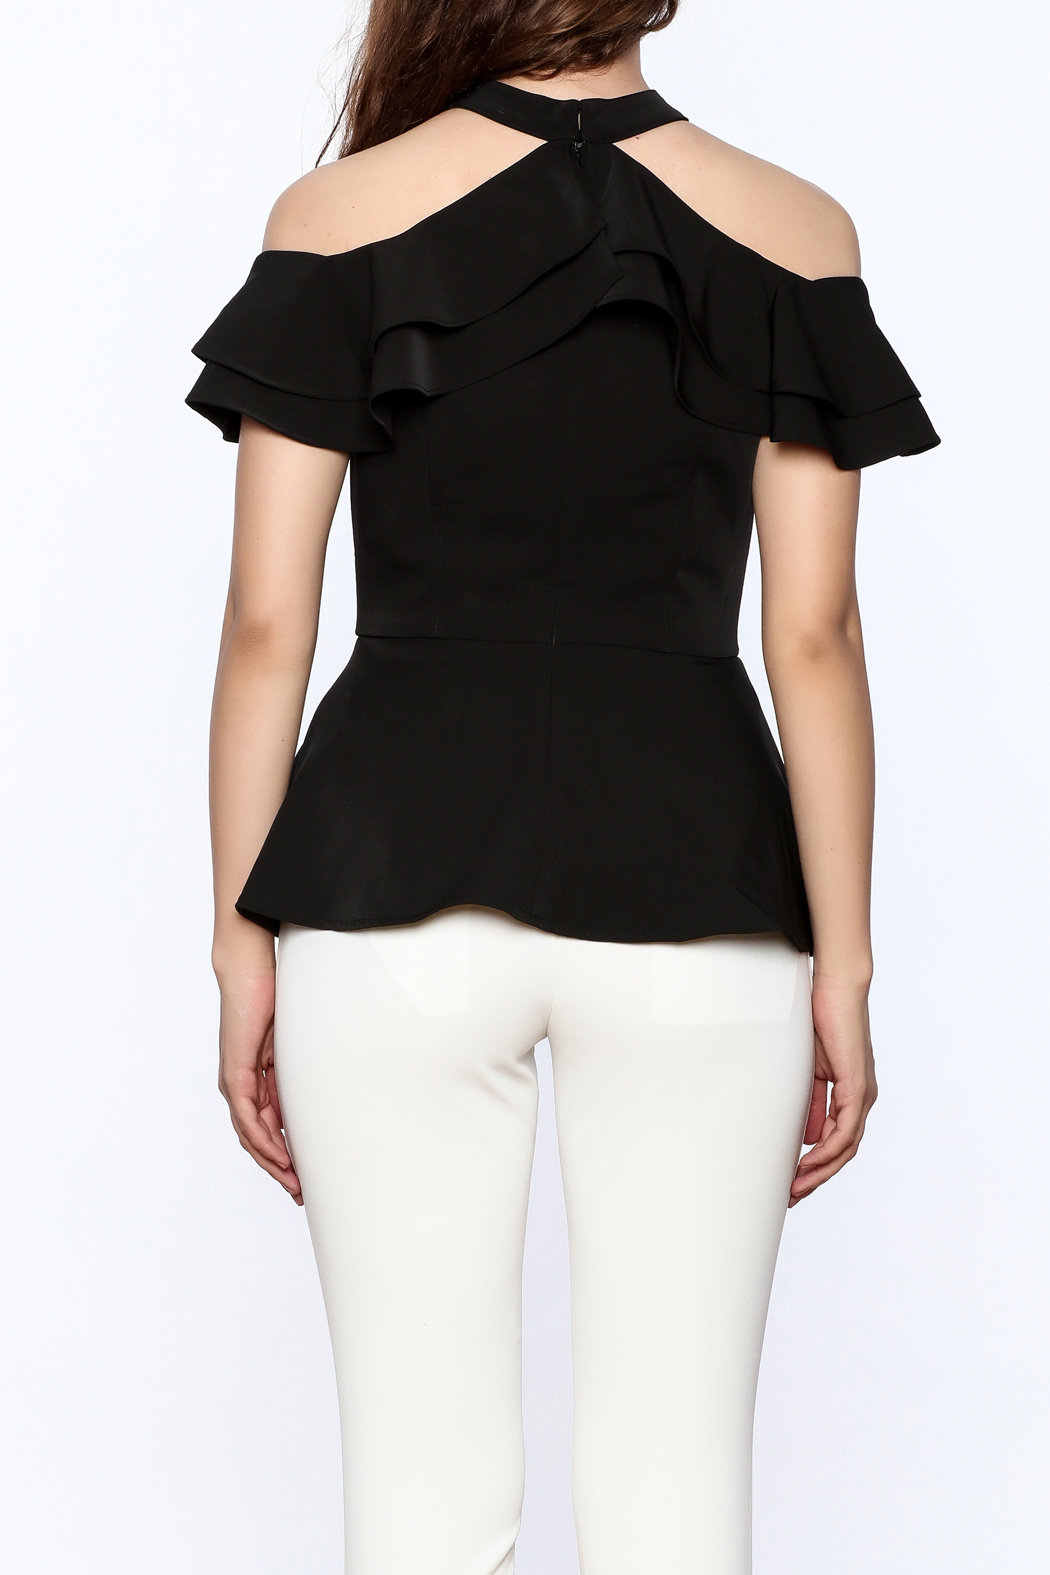 Gracia Ruffle Sleeveless Top - Back Cropped Image